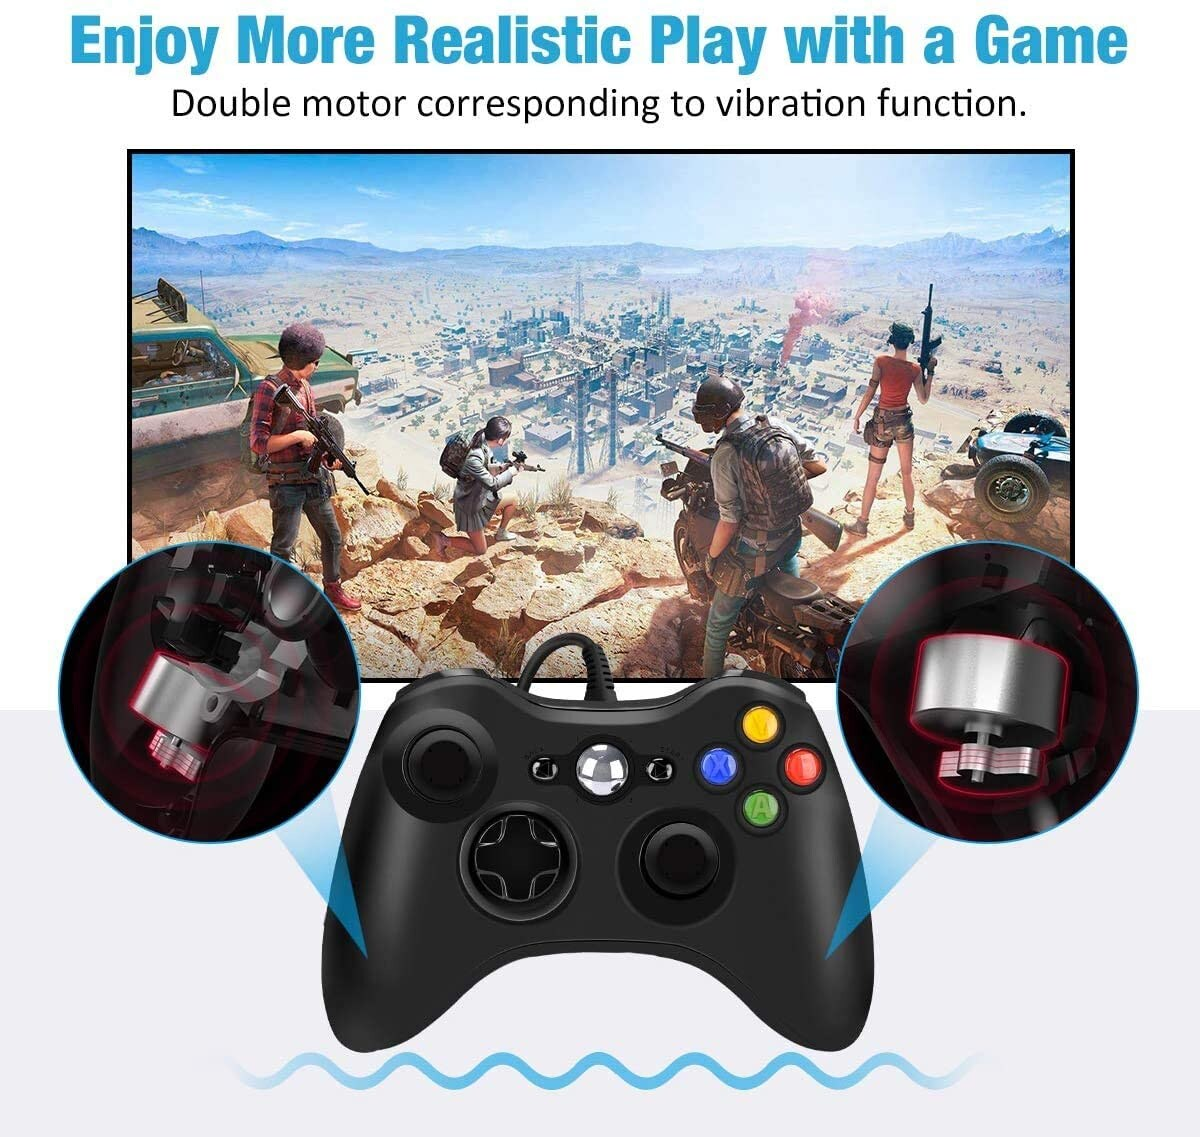 USB Wired Controller Game Accessories Gamepad Joypad Joystick For Microsoft XBOX360 Console PC Black - 4